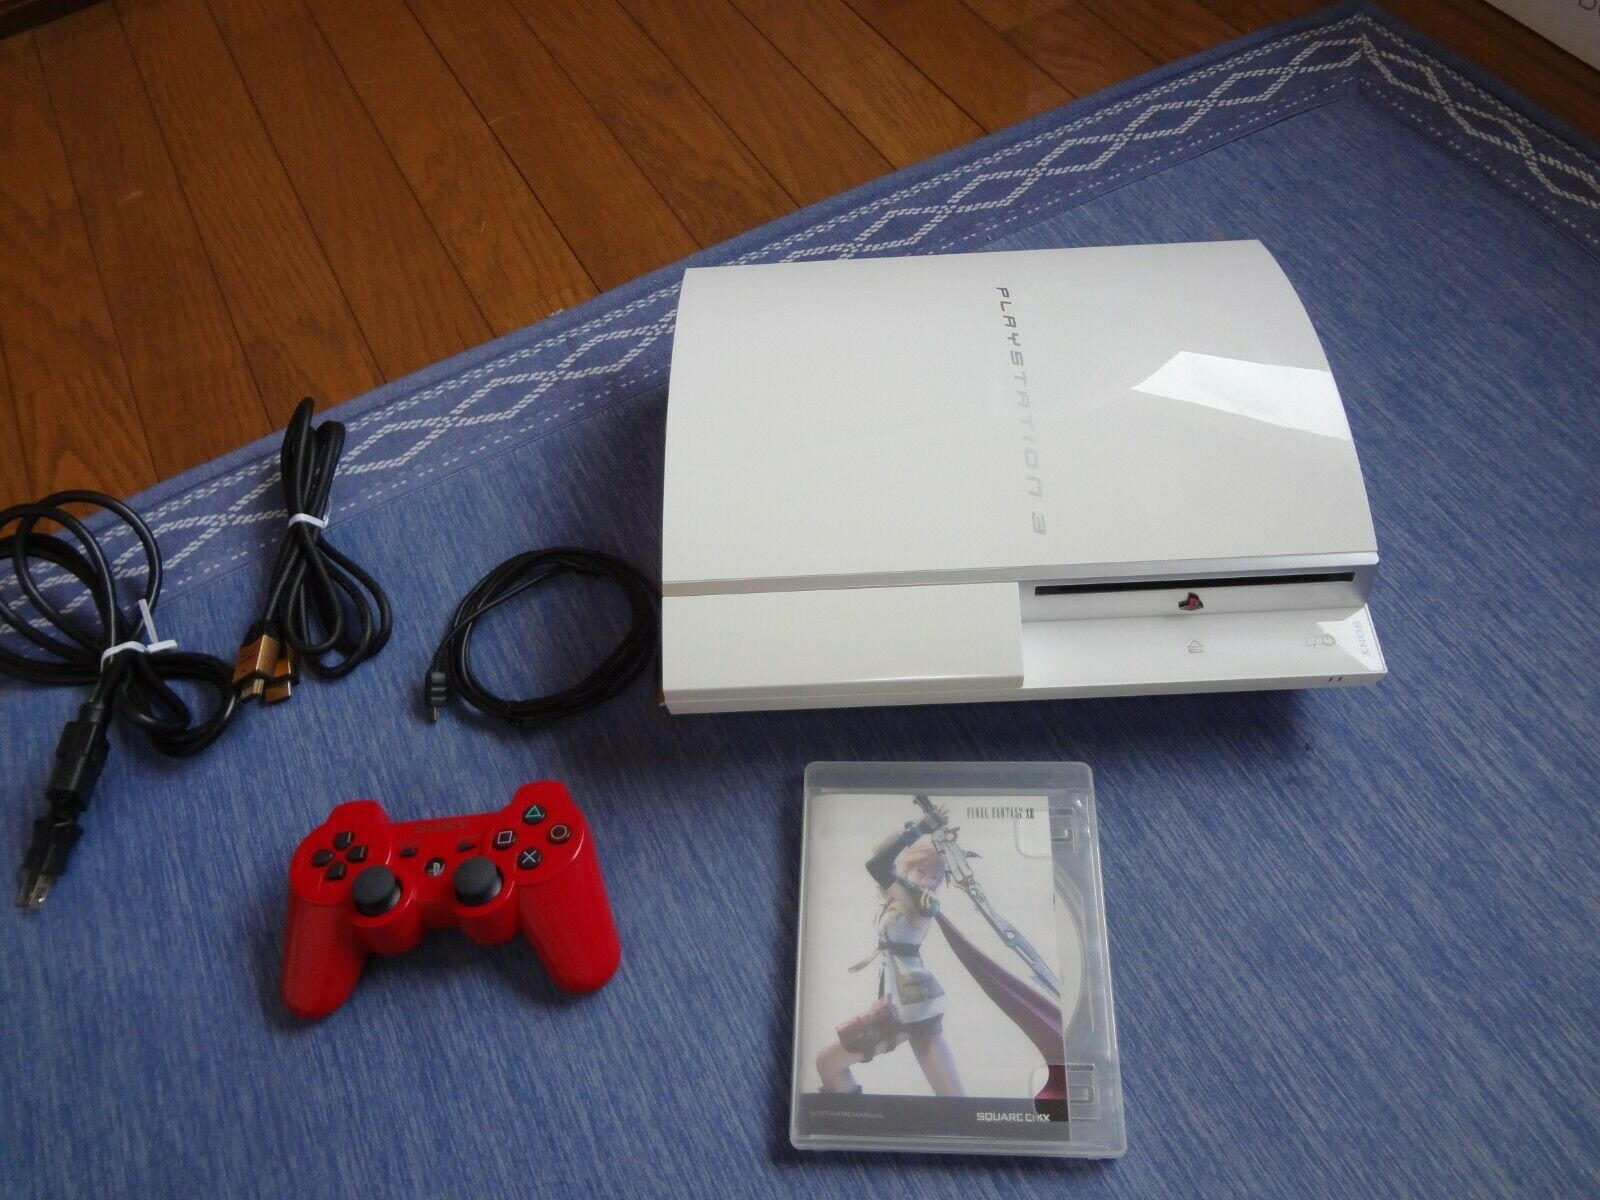 SONY Playstation 3 PS3 White Console system set Tested Work